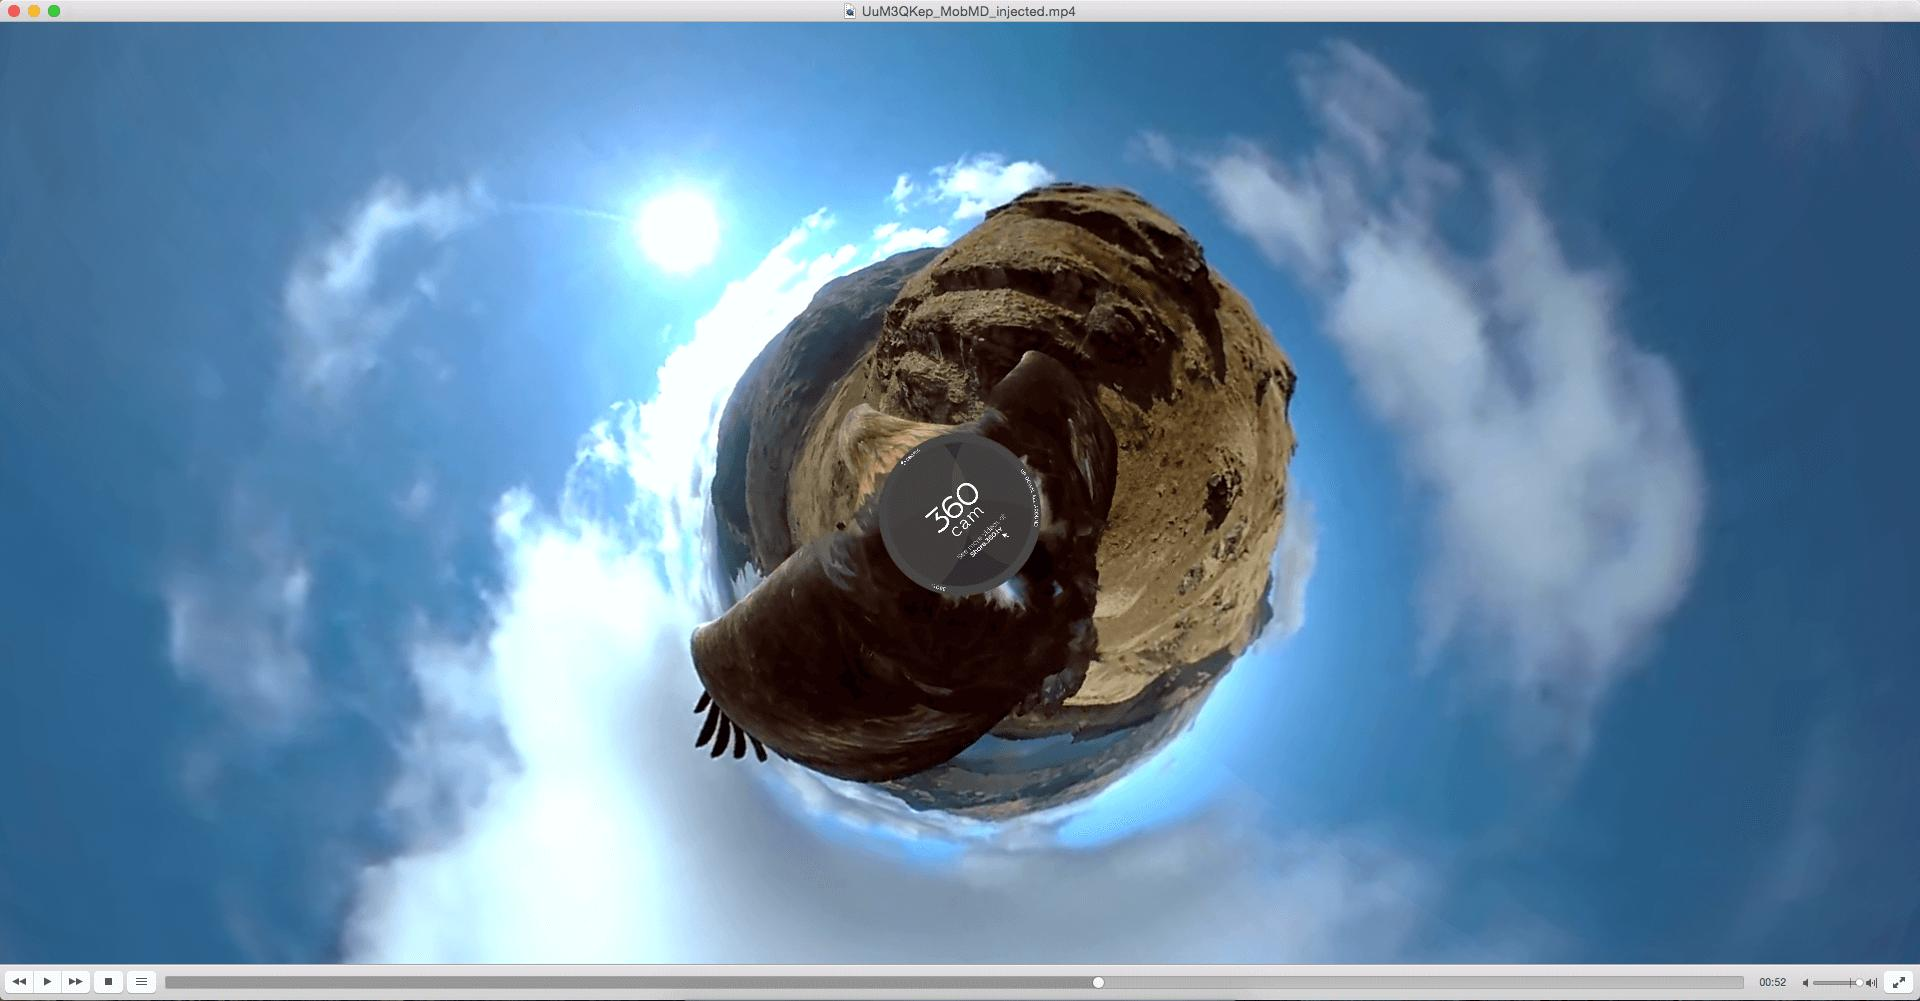 Video a 360 gradi - VLC - news - windows lover